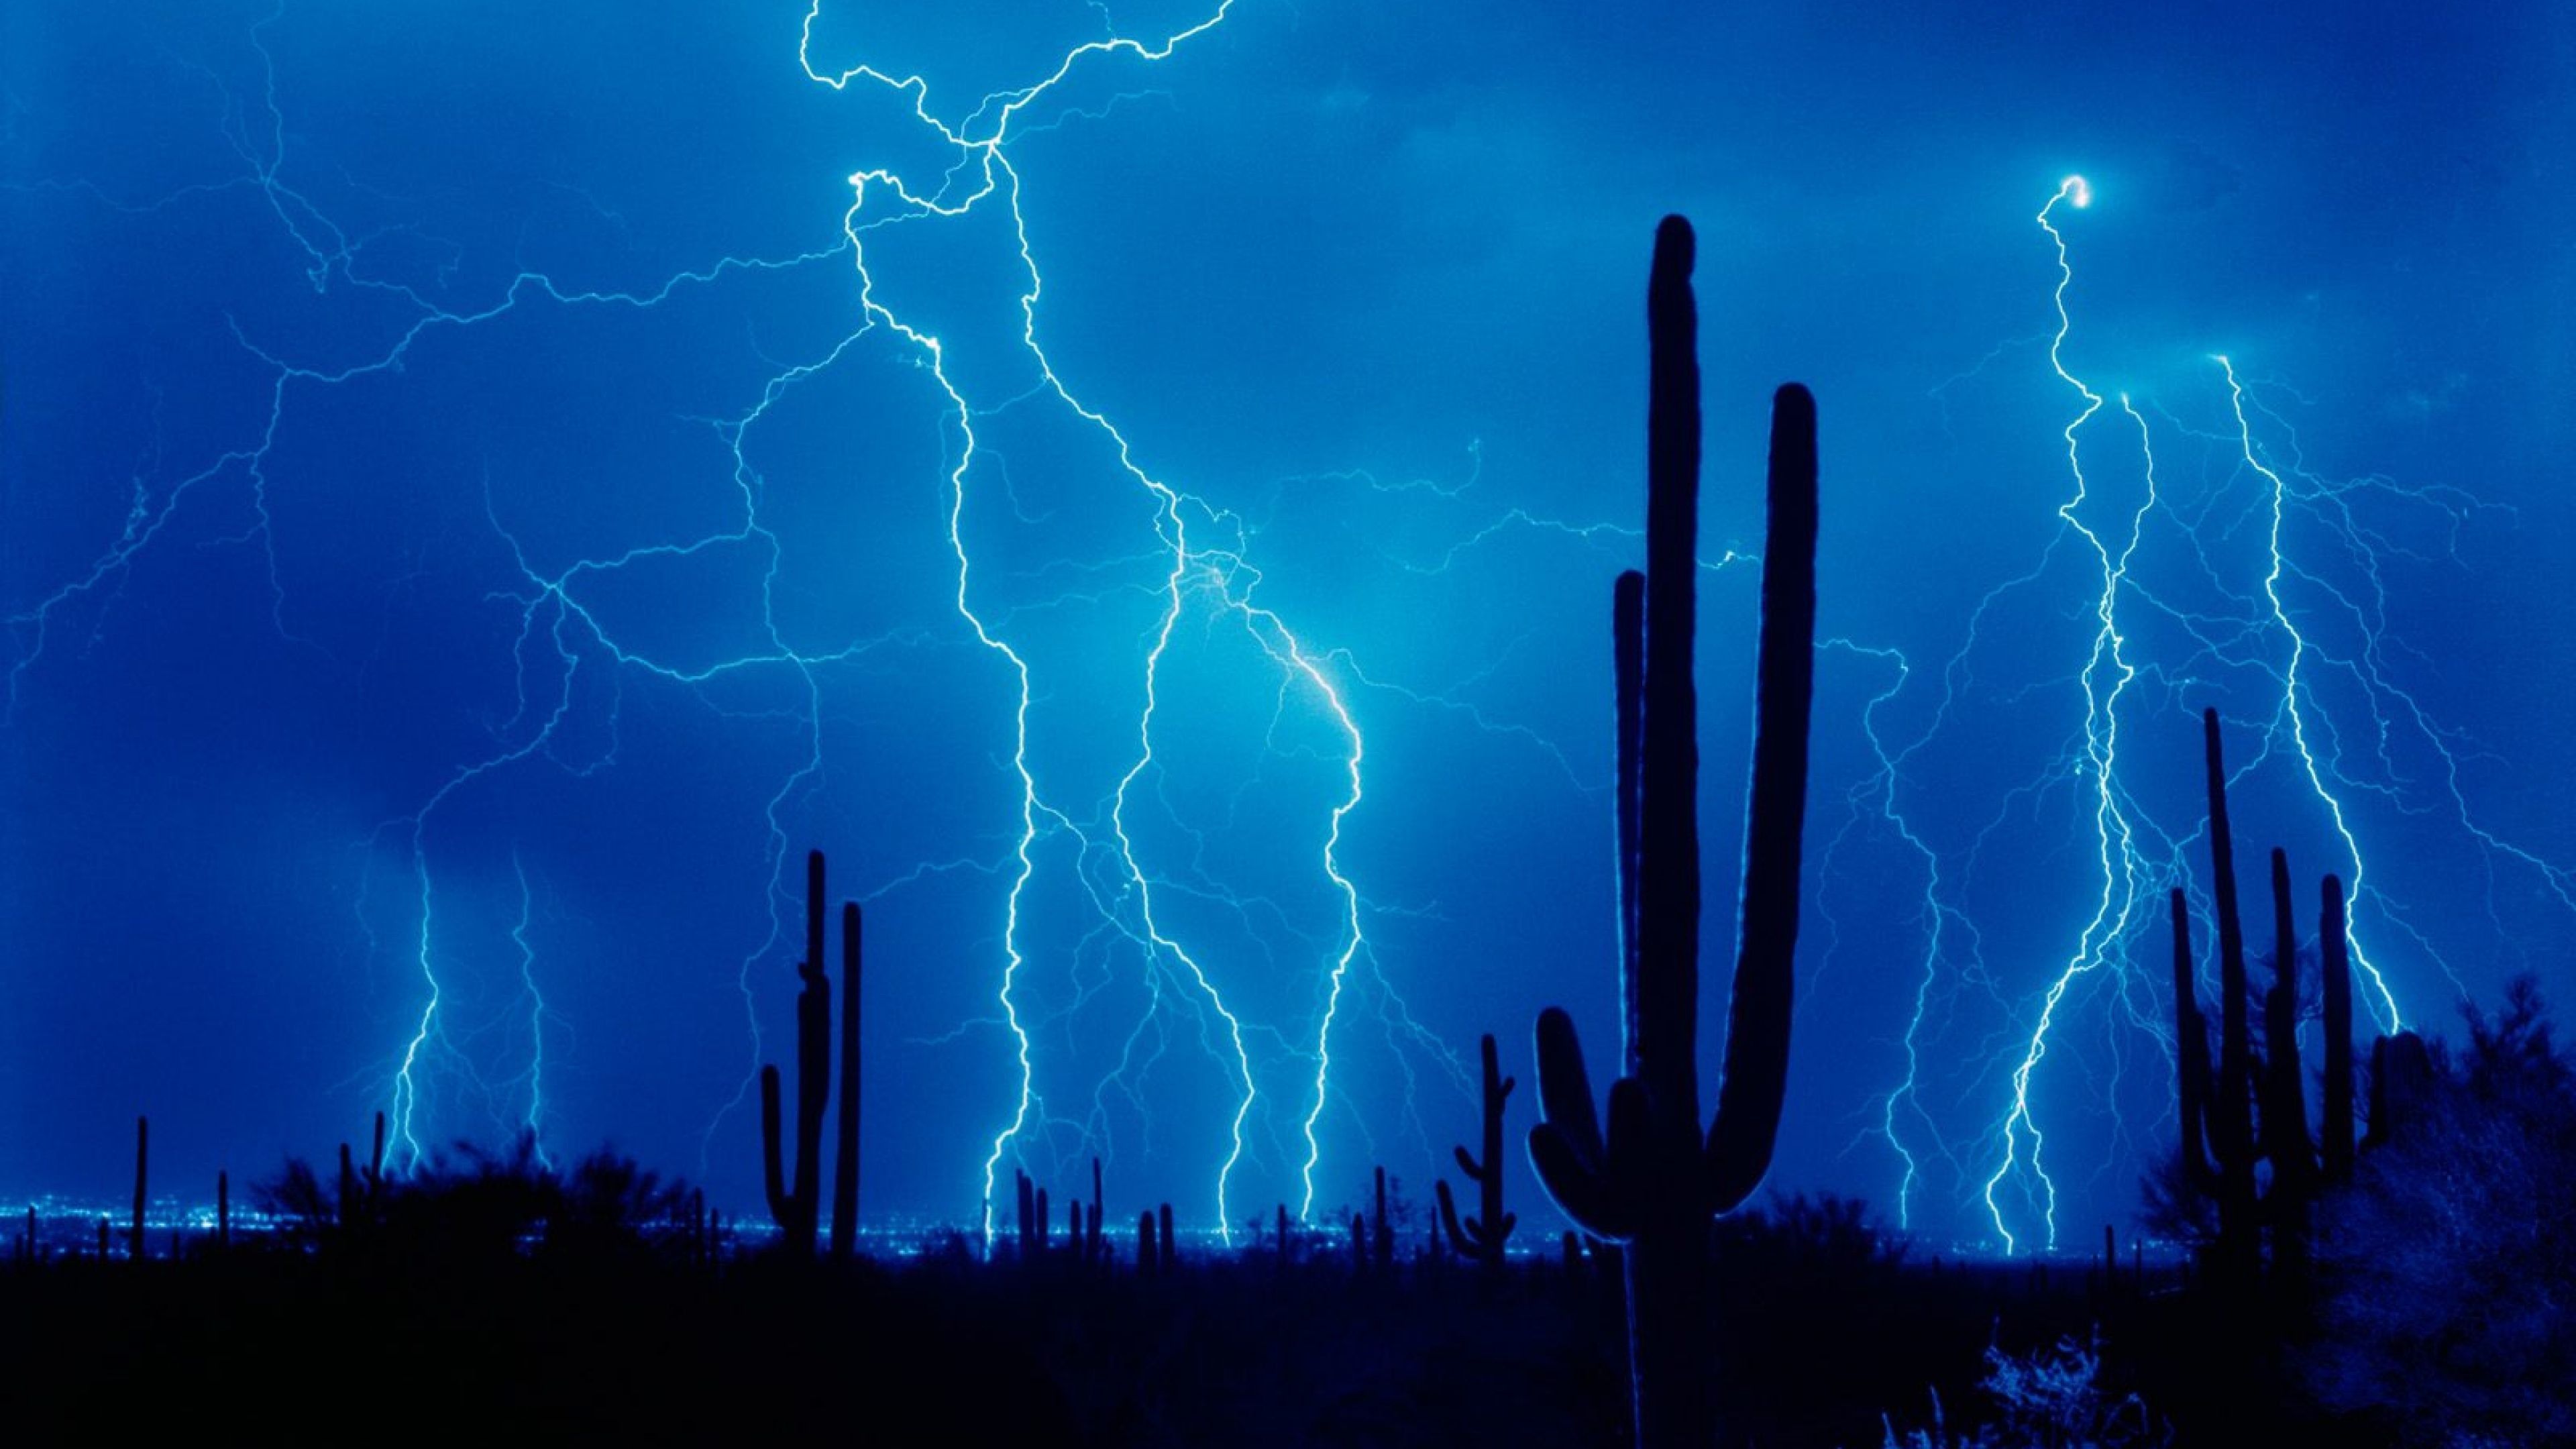 3840x2160 Download Wallpaper  Lightning, Thunder-storm, Elements .